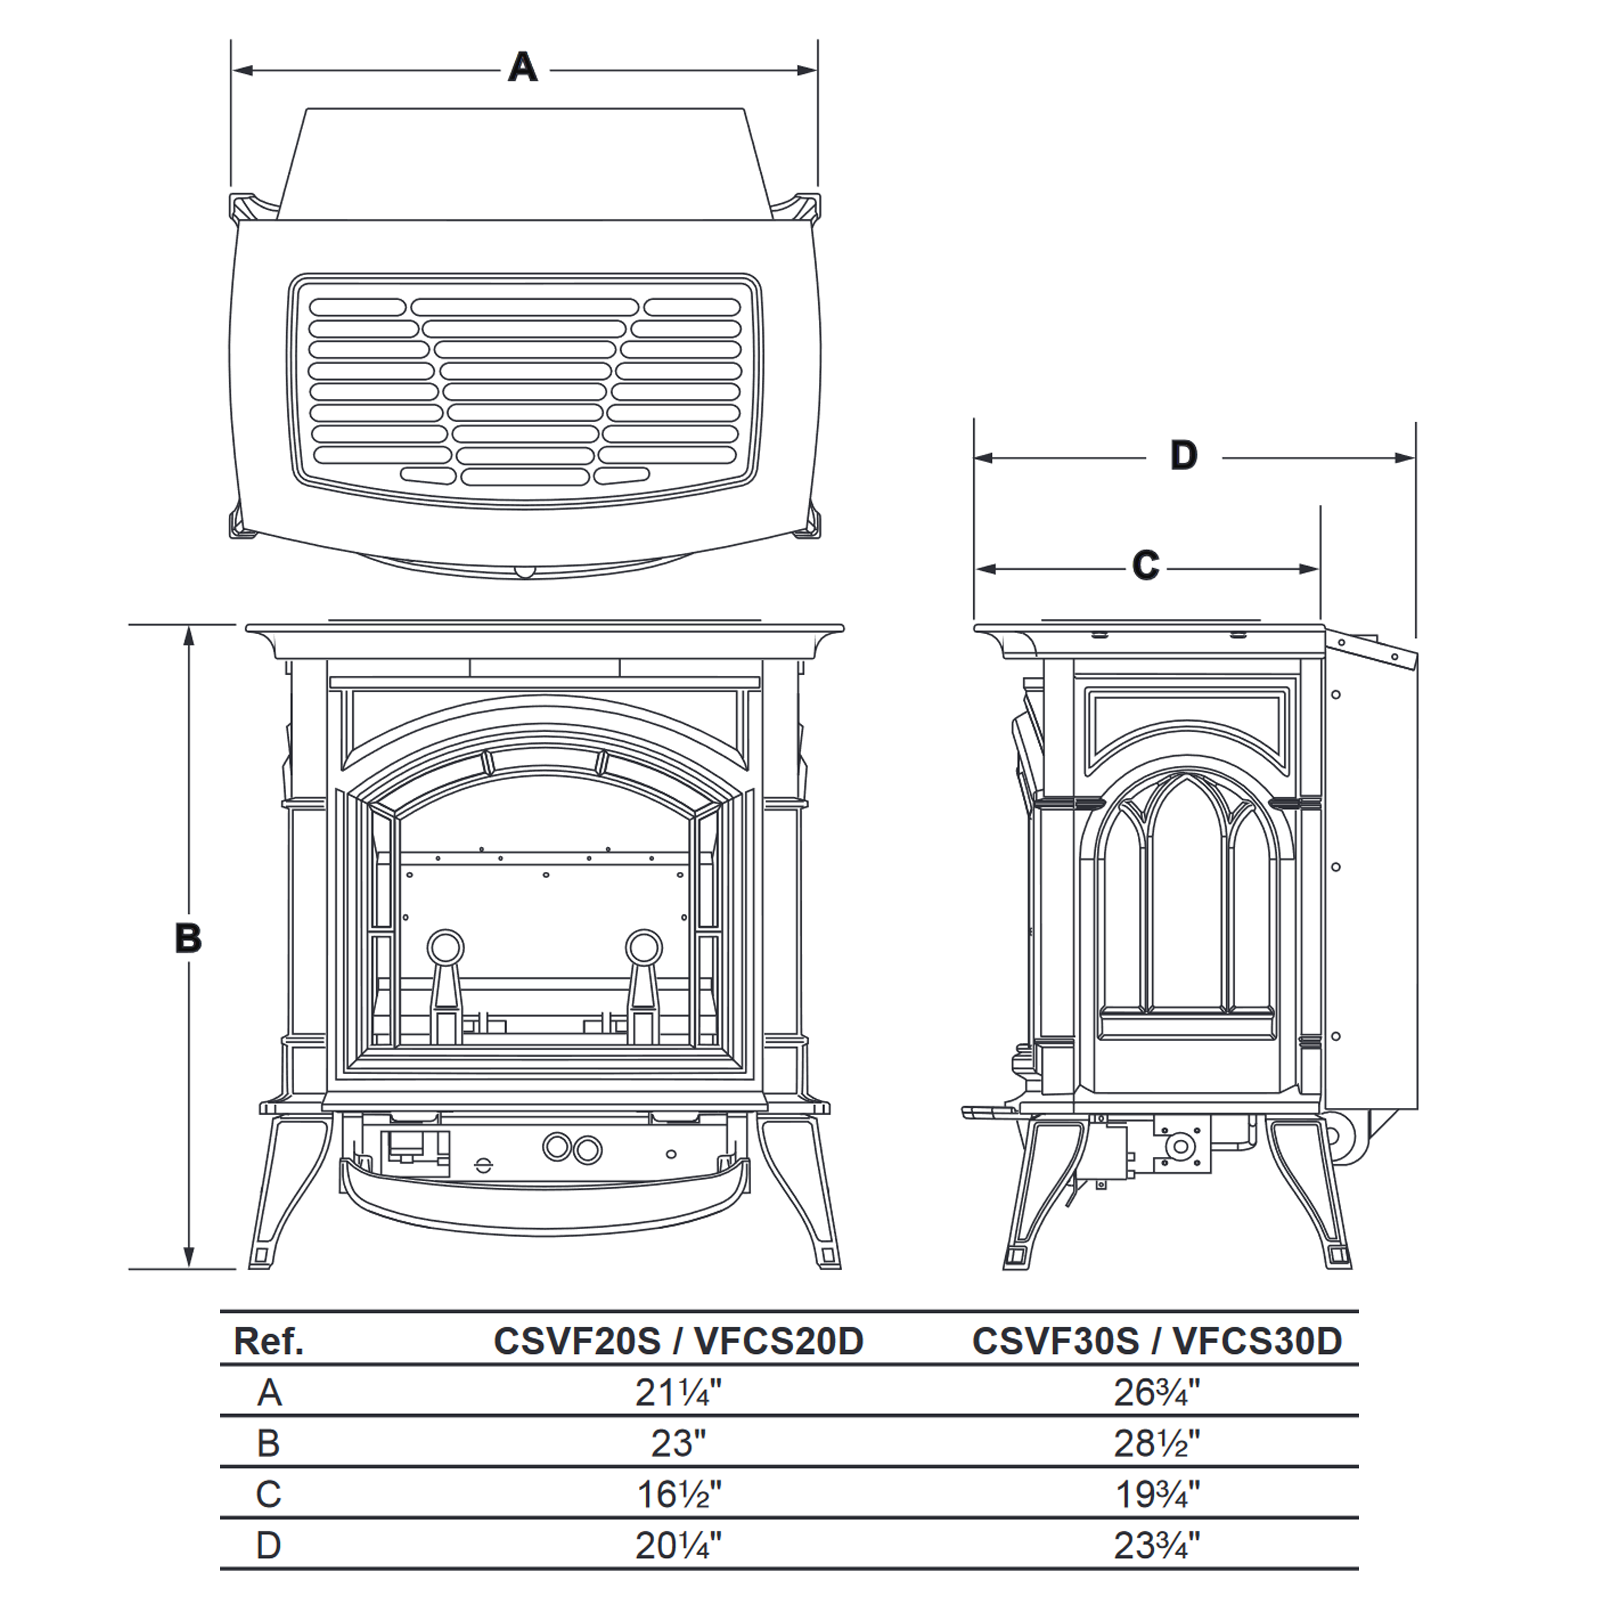 CSVF30 Technical Drawing 1